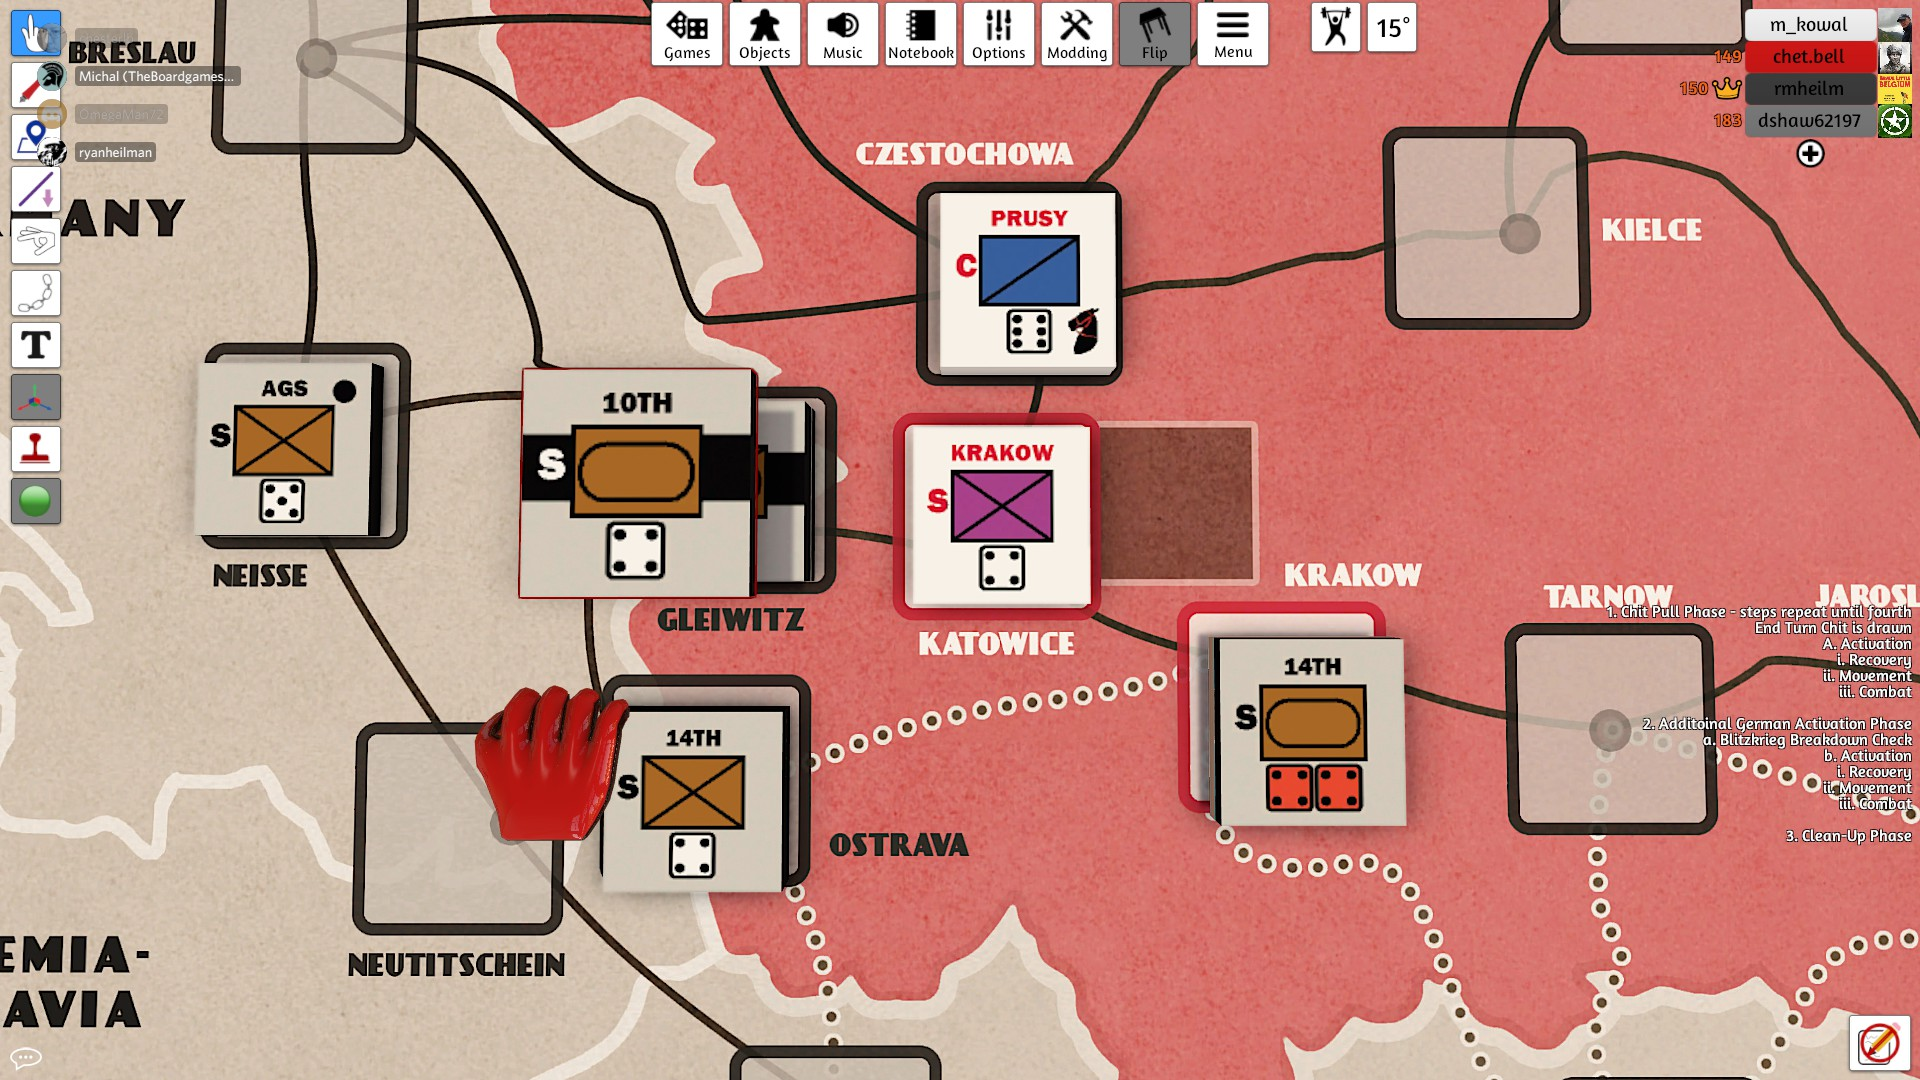 The last and final attack on Katowice - this time Chester will get the city!